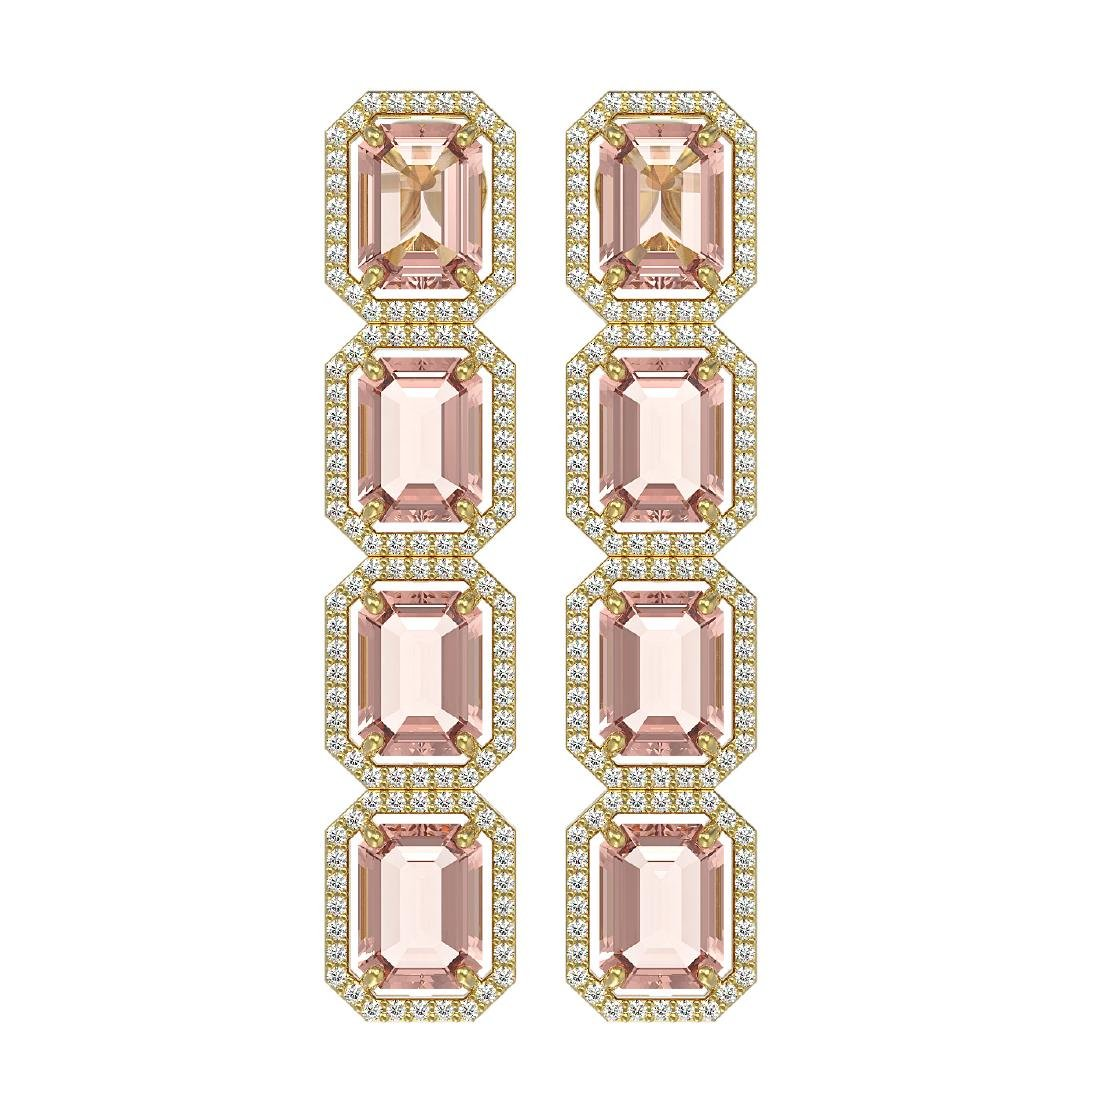 19.81 CTW Morganite & Diamond Halo Earrings 10K Yellow